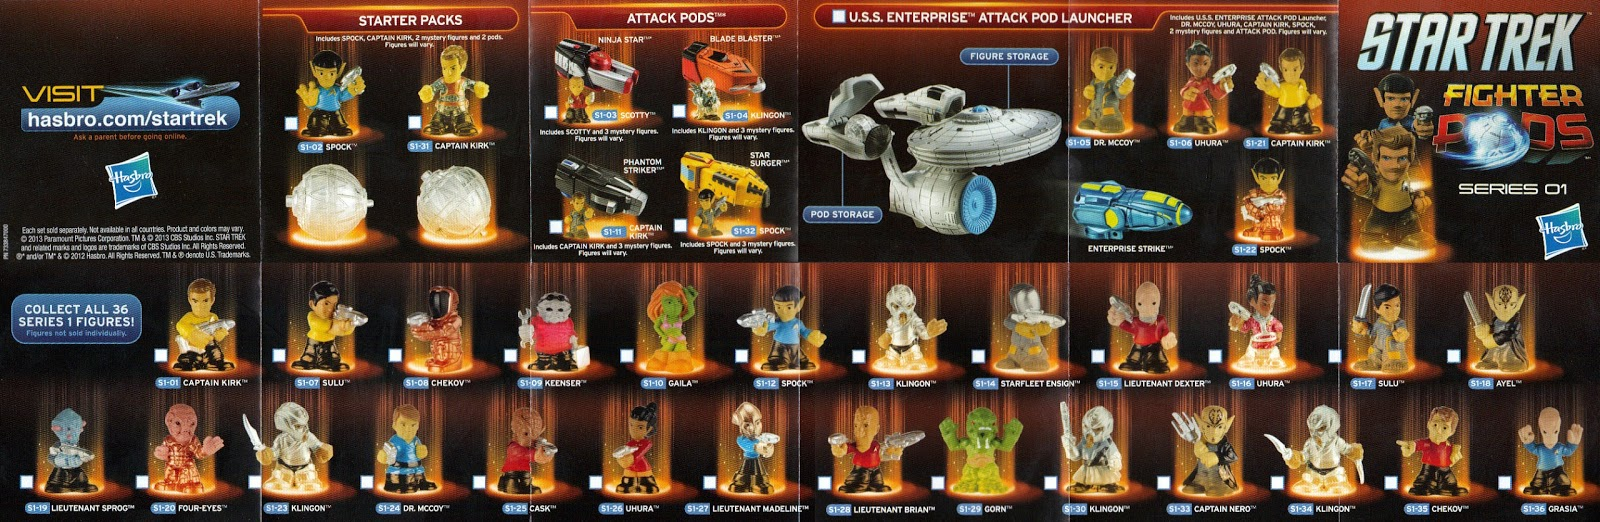 The Trek Collective: New images and details of the Star Trek Fighter ...